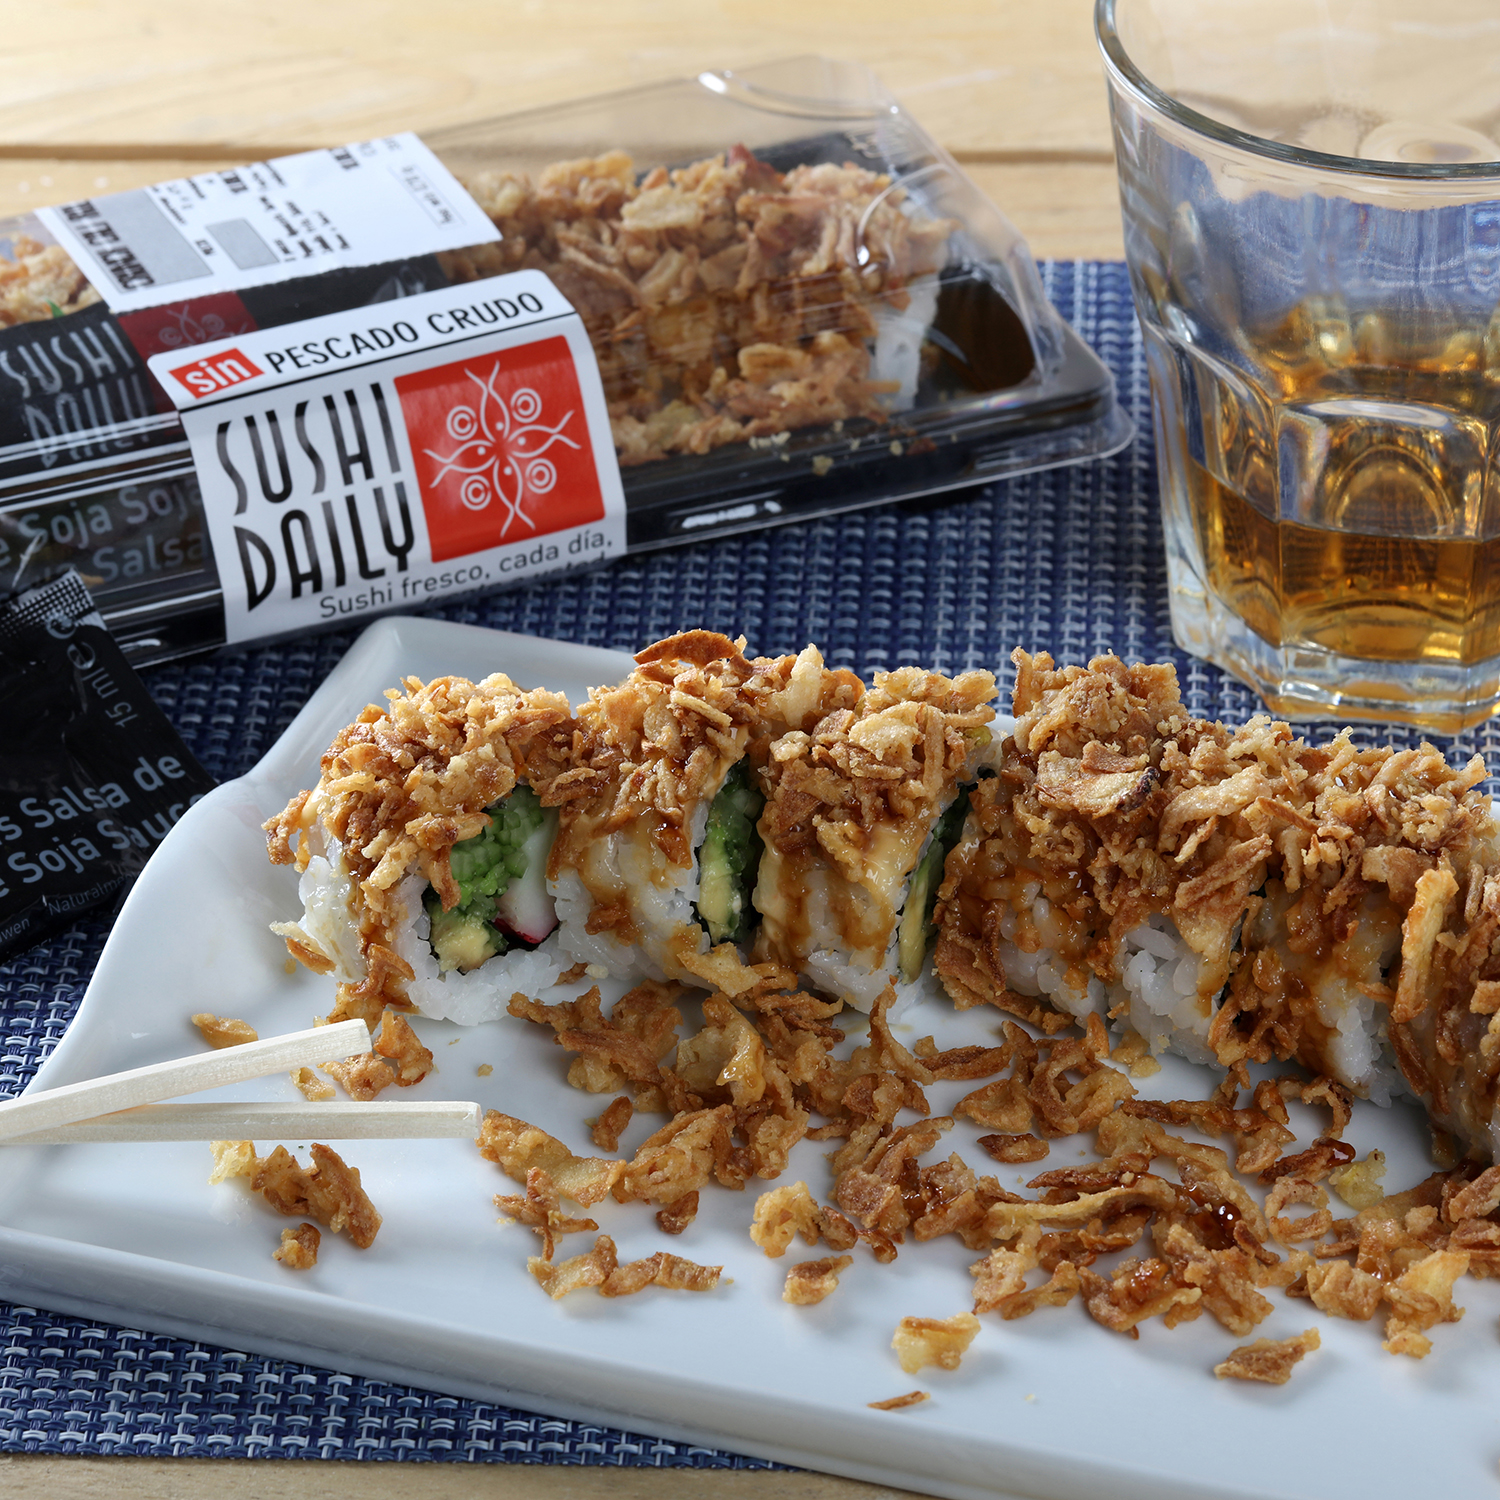 Crunch cali roll